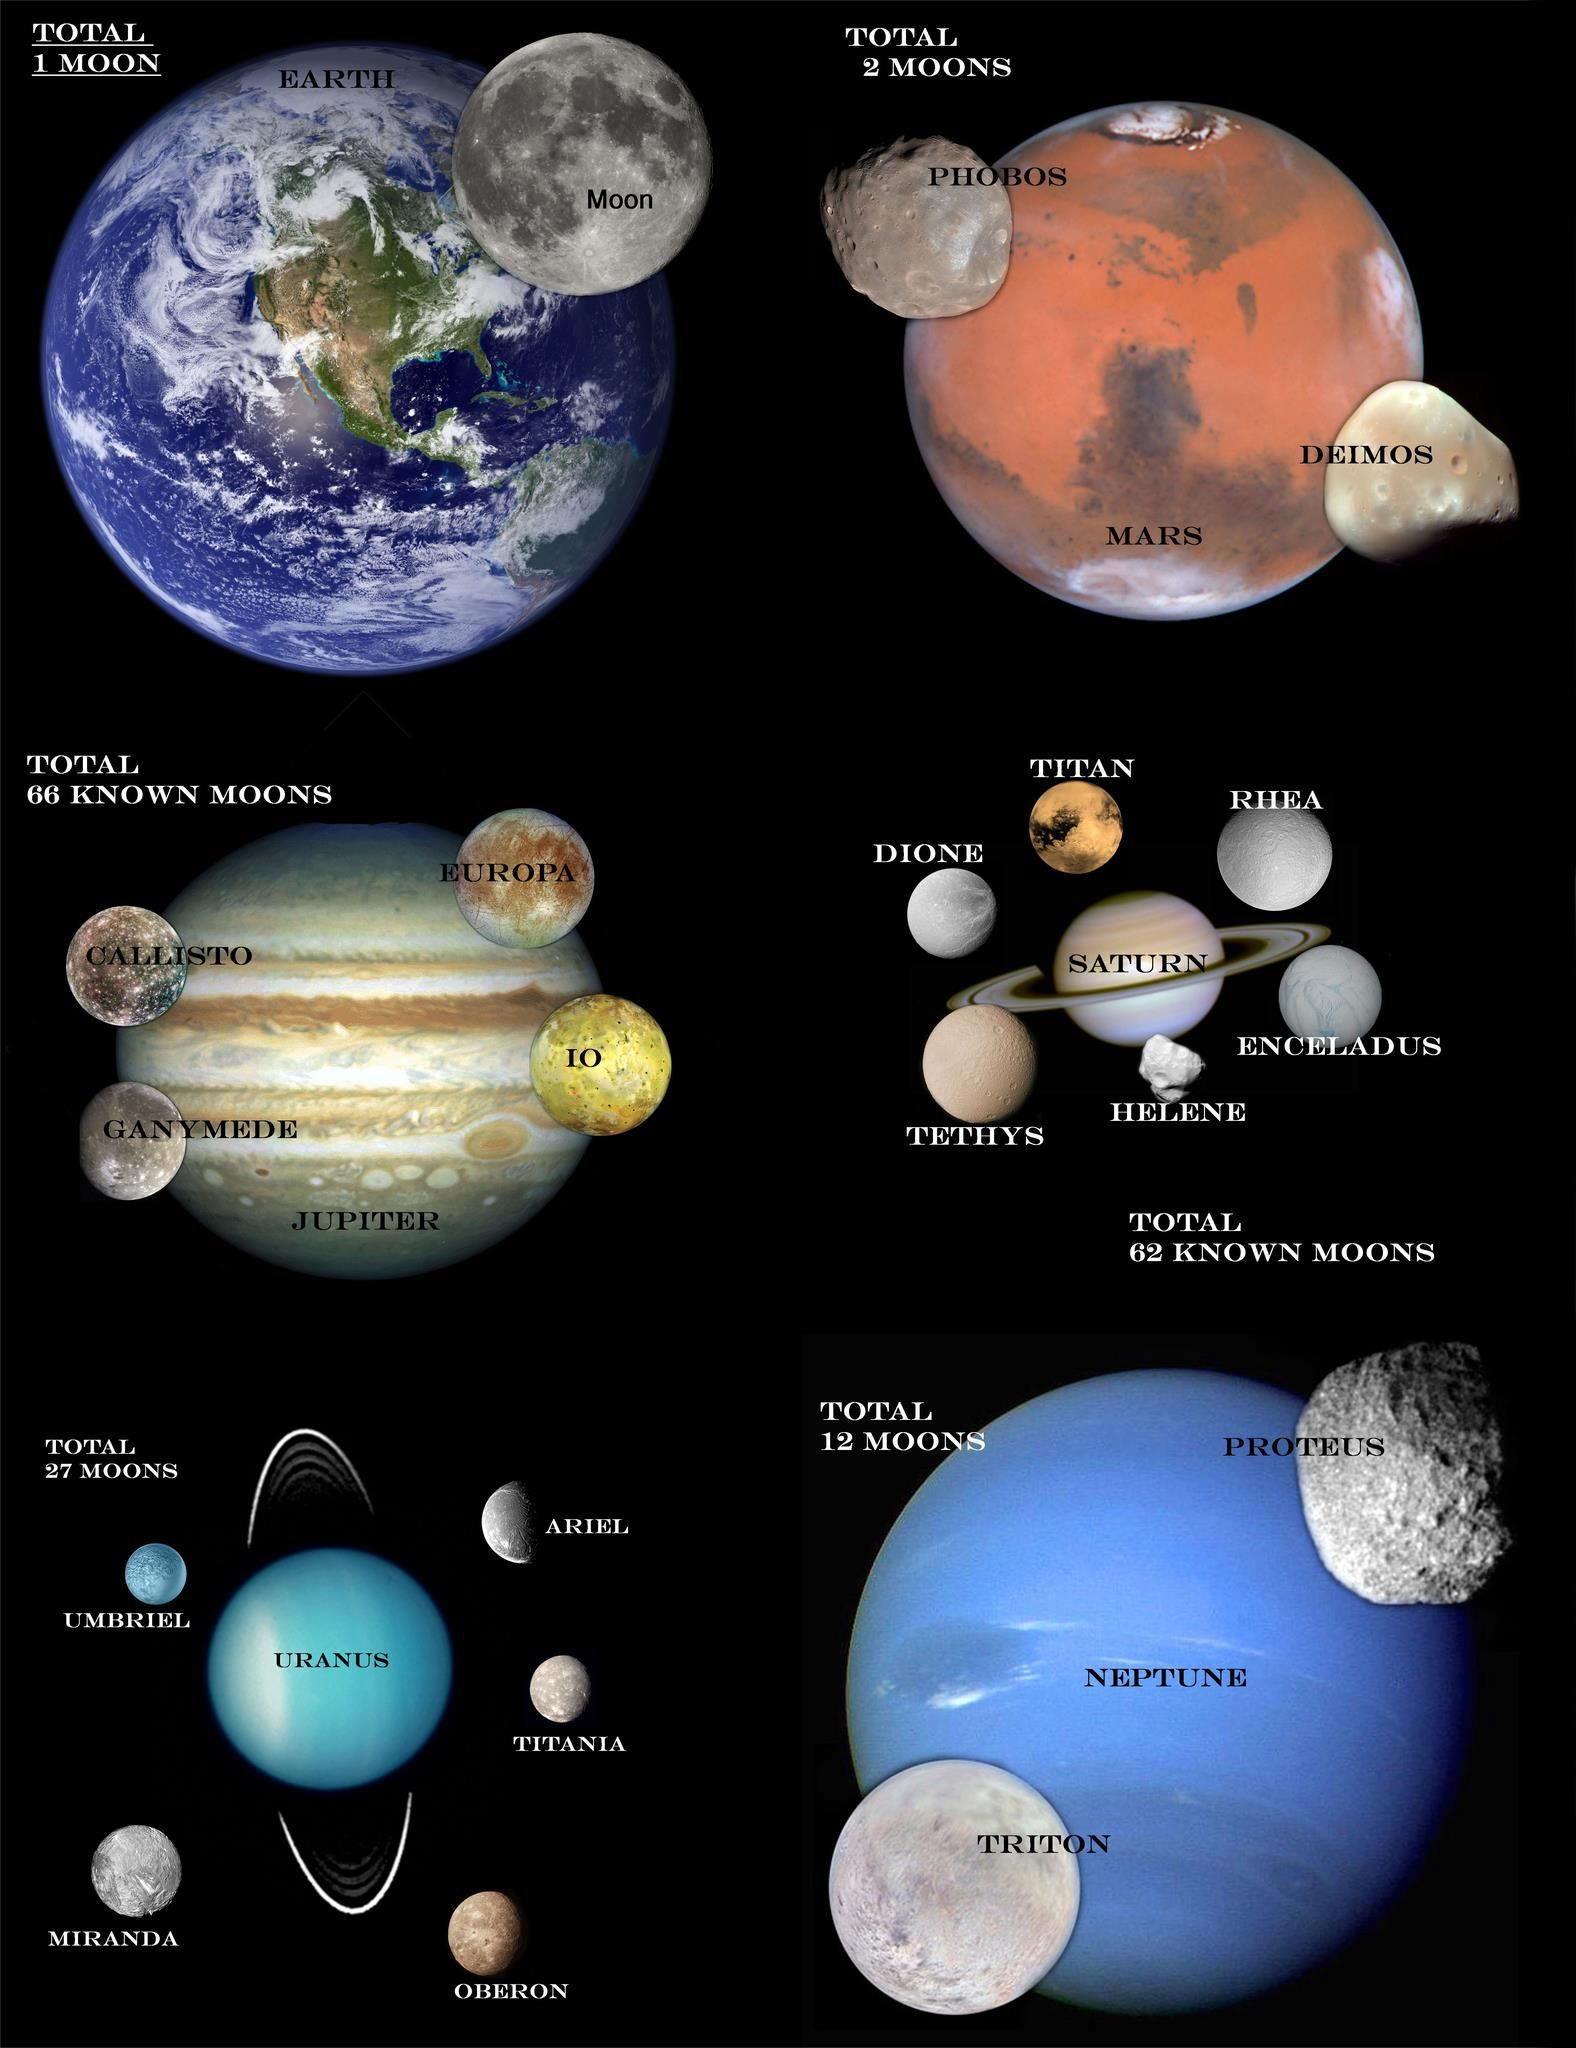 Planets & their moons | 30 days project | Pinterest ...